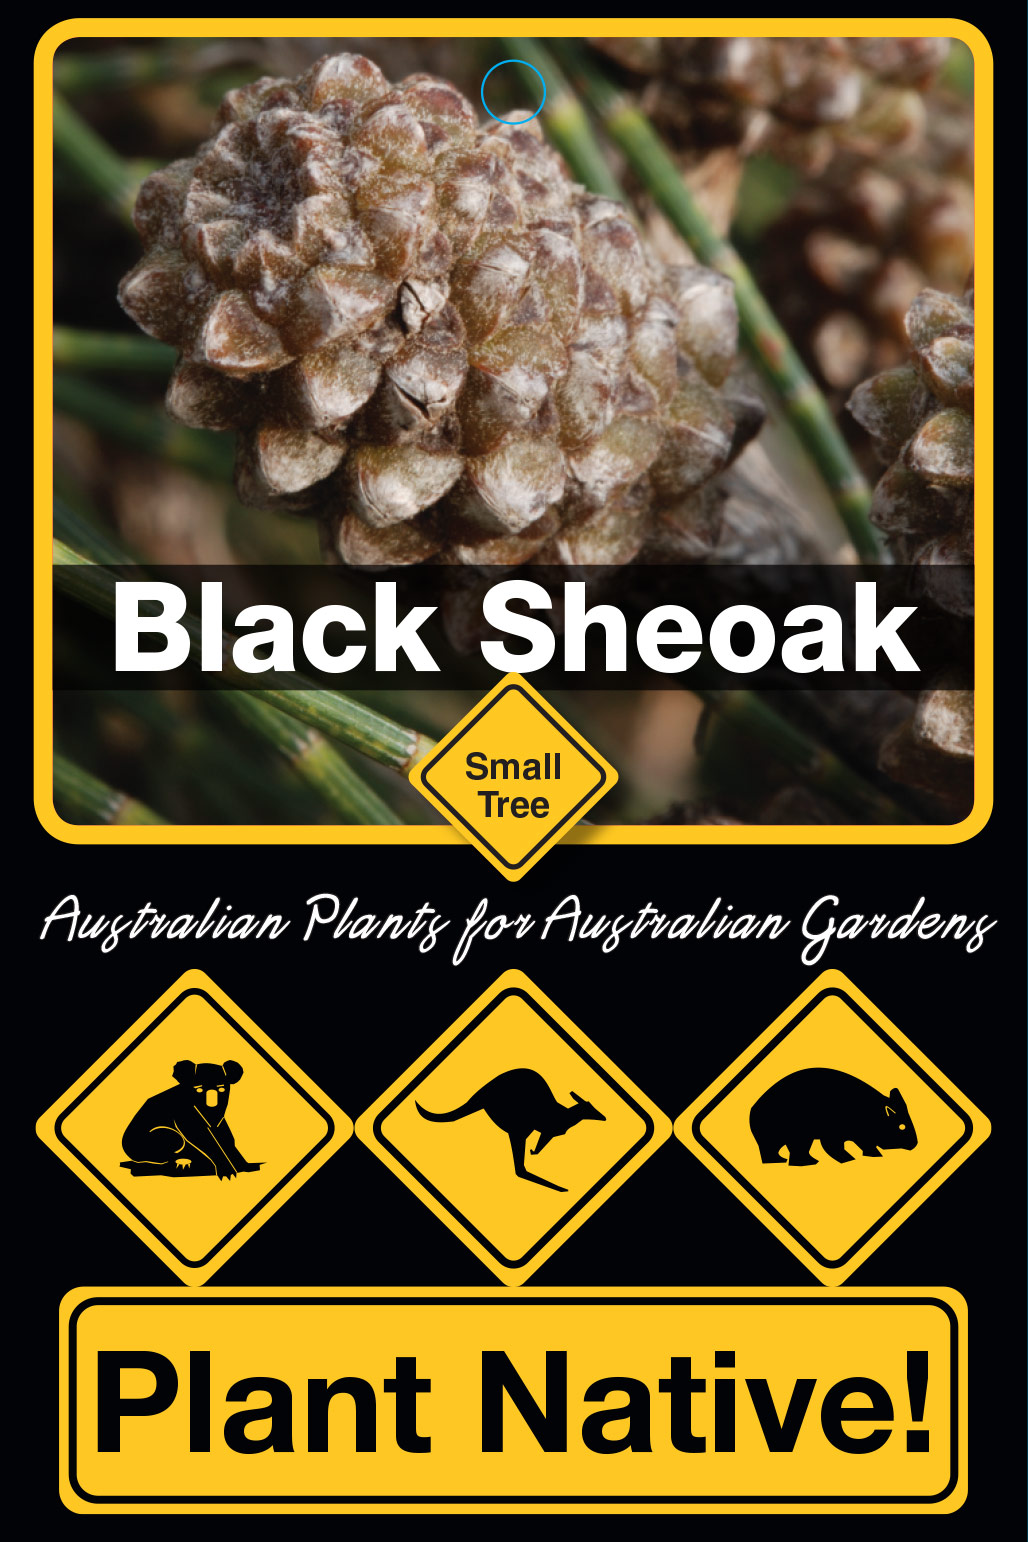 Black Sheoak - Plant Native!